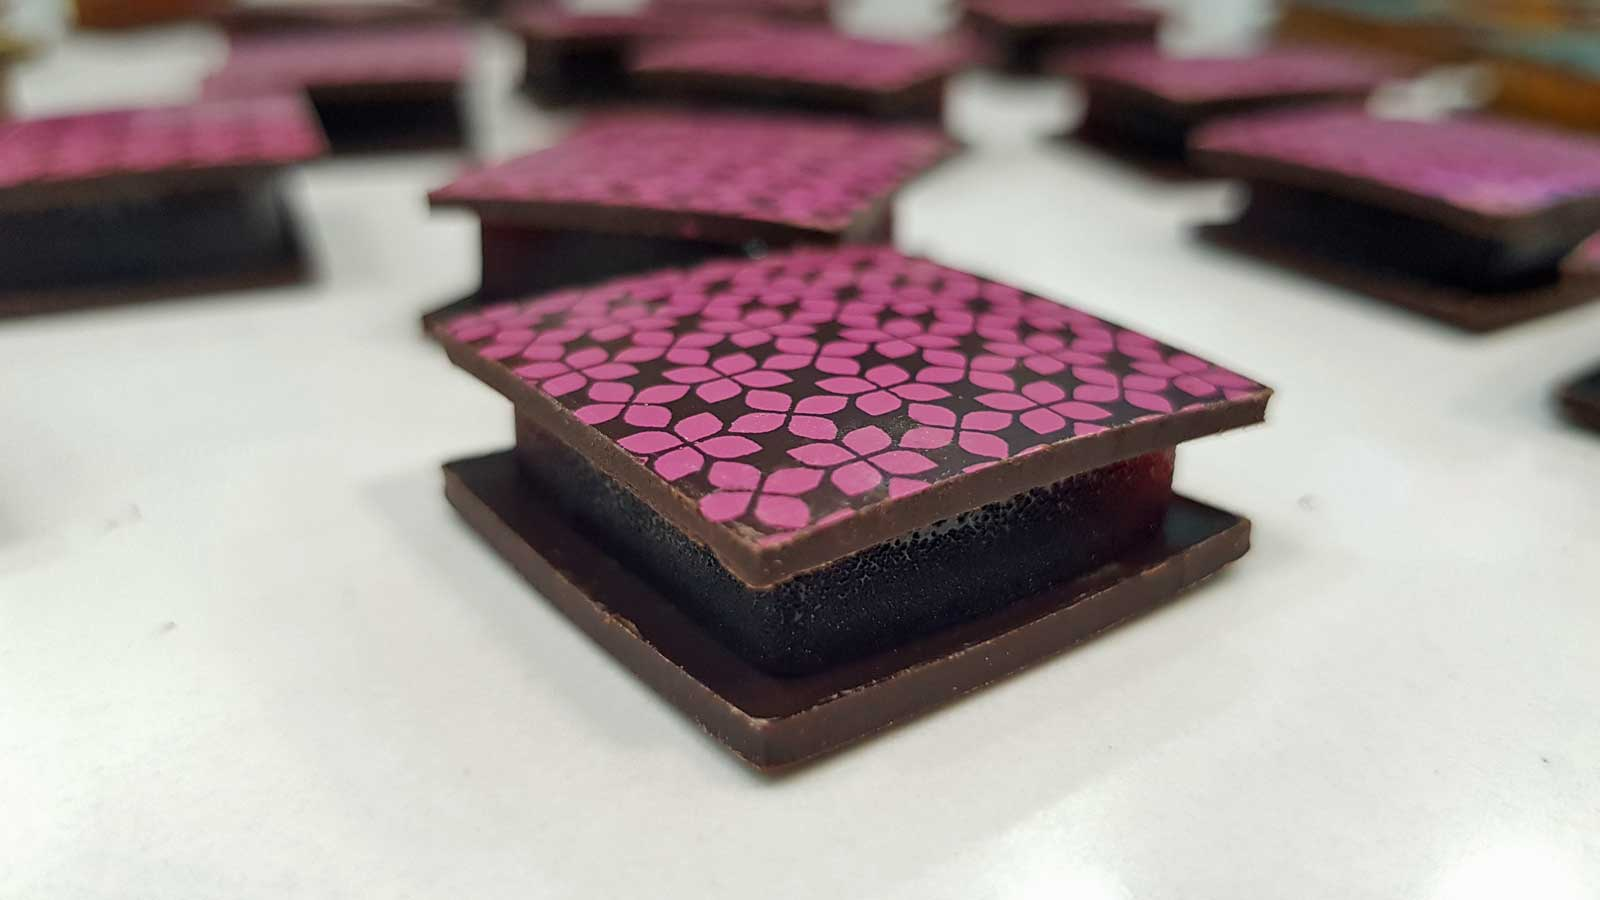 Chocwich - The Chocolate That Thinks It's A Sandwich - Product Unique to Fifth Dimension Chocolates